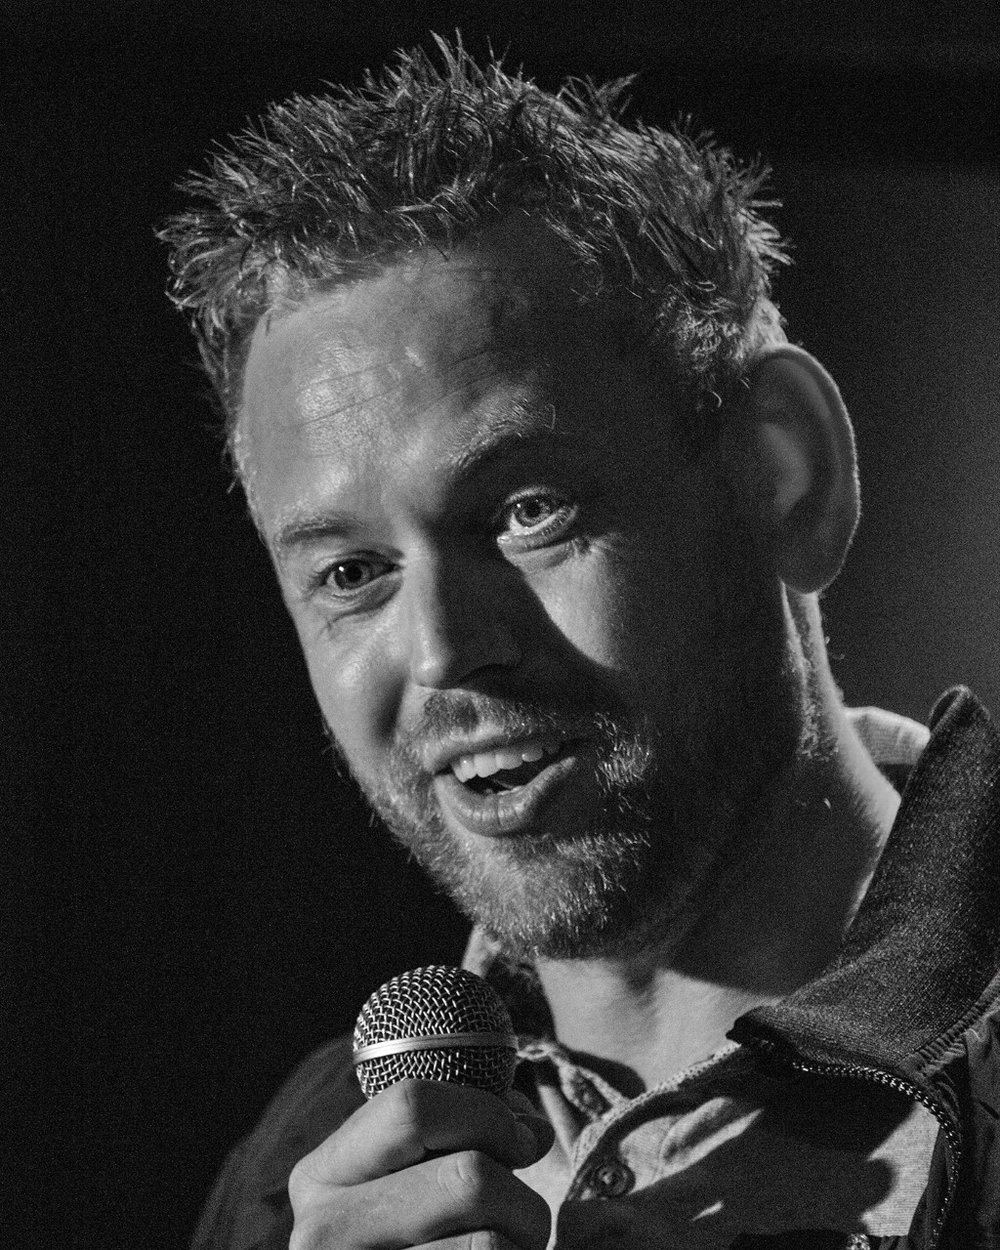 Mark Row - has made rapid progress since beginning stand-up comedy just two years ago. The documentary 'A1: The Long Road to Edinburgh', which is now out on Amazon, followed his journey from stepping on stage for the very first time in October 2016, to performing his own show at the Edinburgh Festival the following summer. In the time since then he has been making a name for himself appearing at clubs all over the country with his world weary tales of starting out in comedy with a wife, three kids and day job to juggle. He is soon to compete in the 2018 Laughing Horse New Act of the Year Semi Finals'If you would like to purchase the documentary please click here!